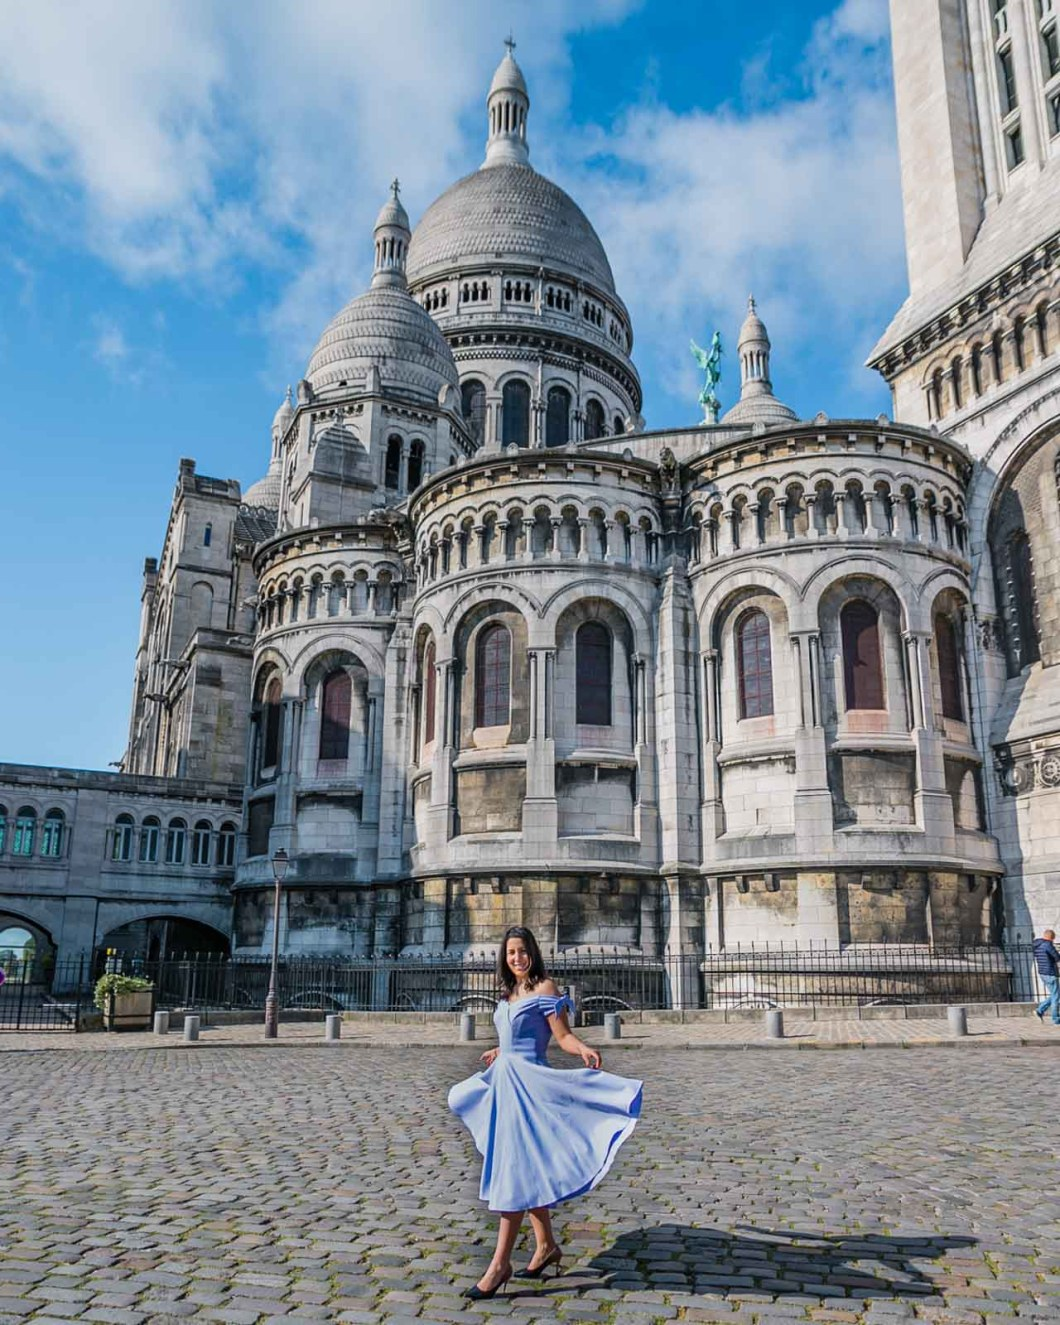 Photoshoot at the Sacre-Coeur Basilica in Montmartre